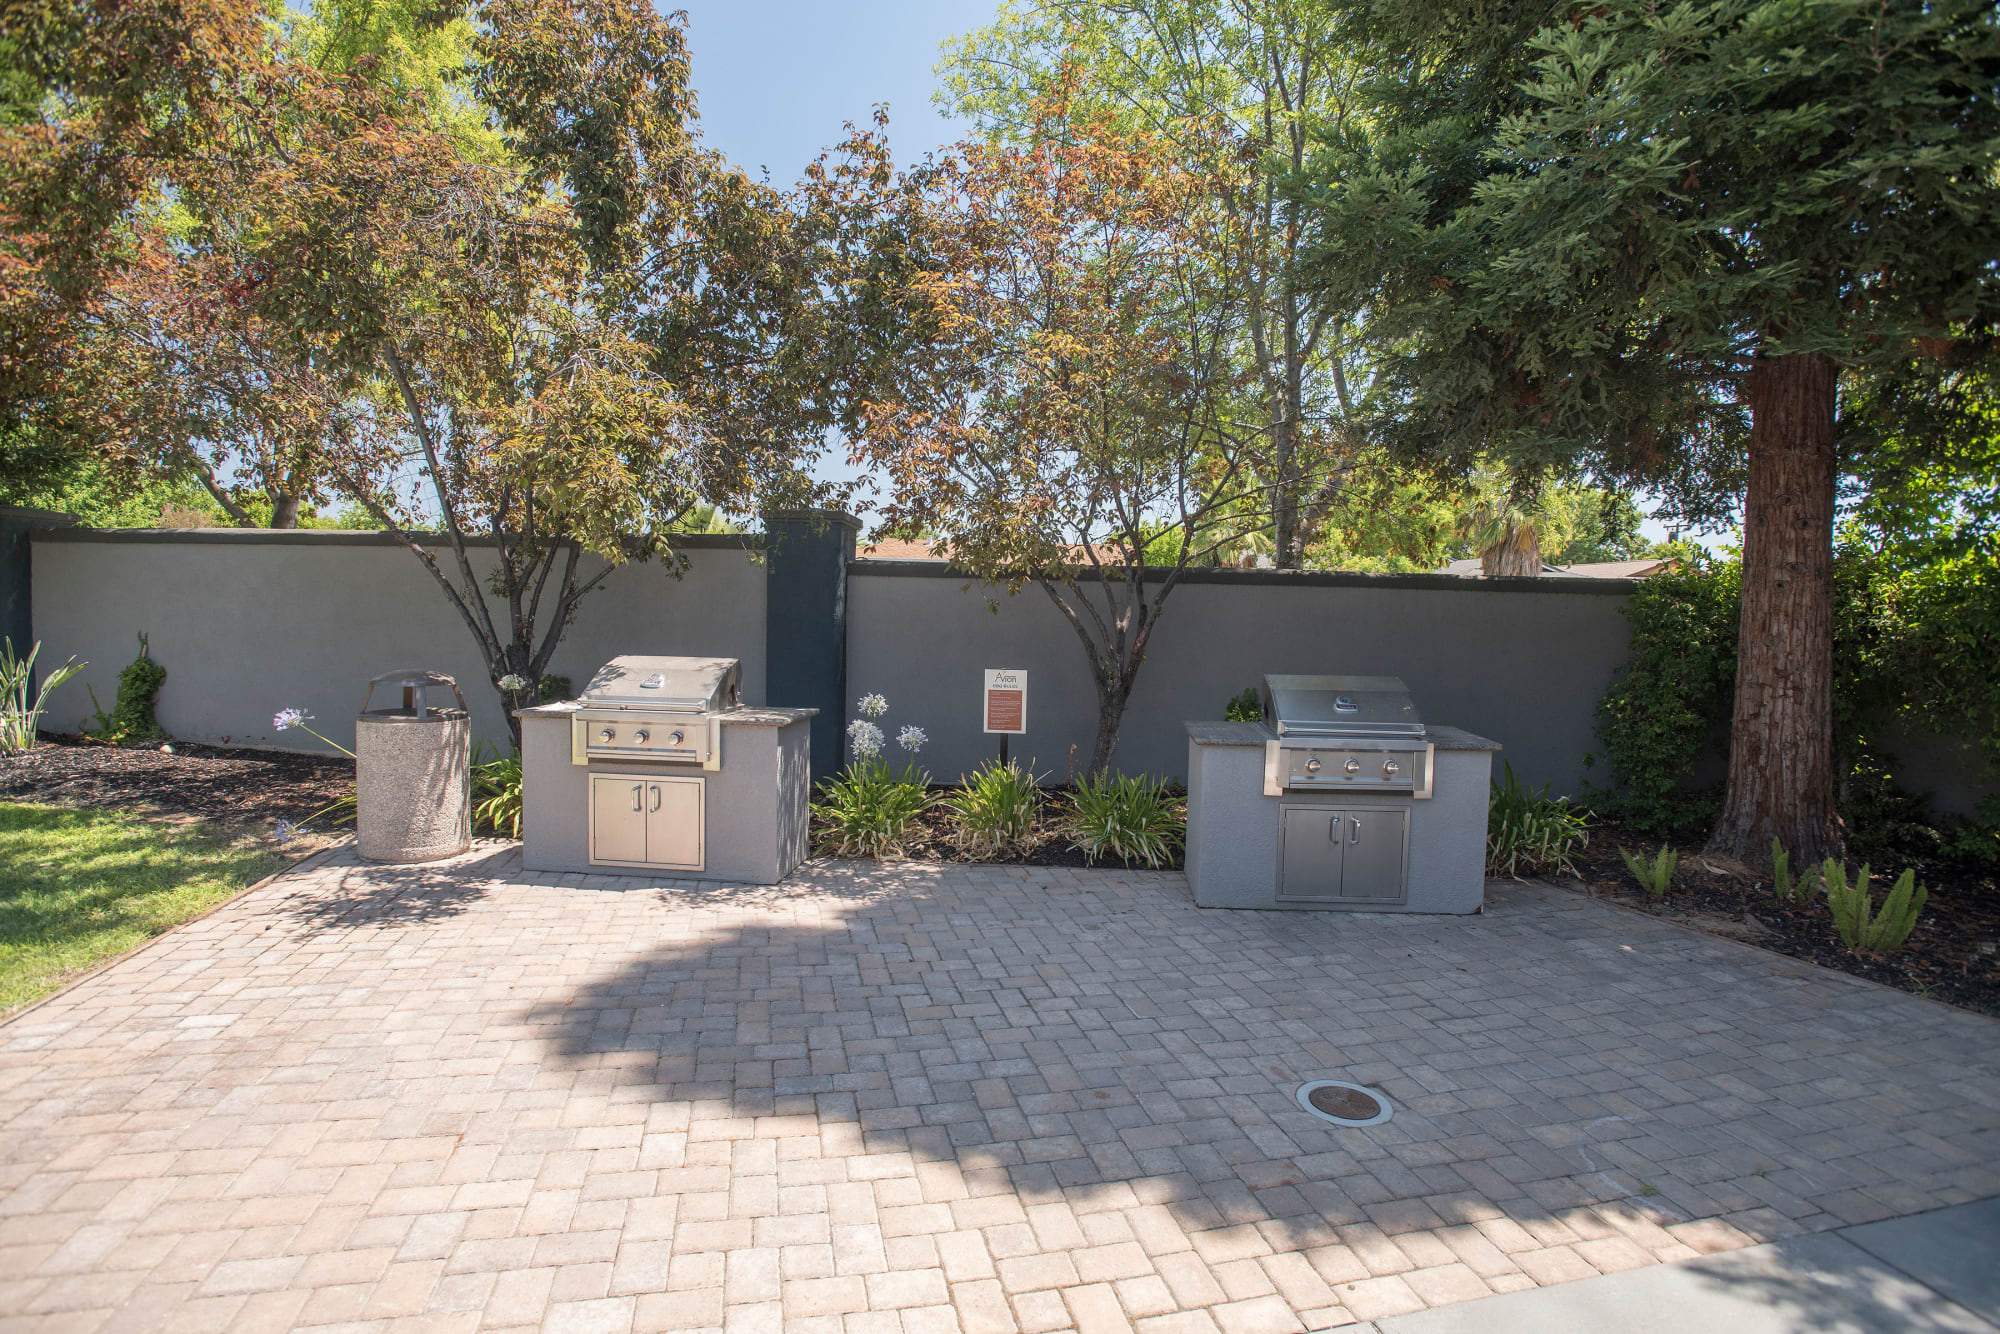 Outdoor grilling area at Avion Apartments in Rancho Cordova, California